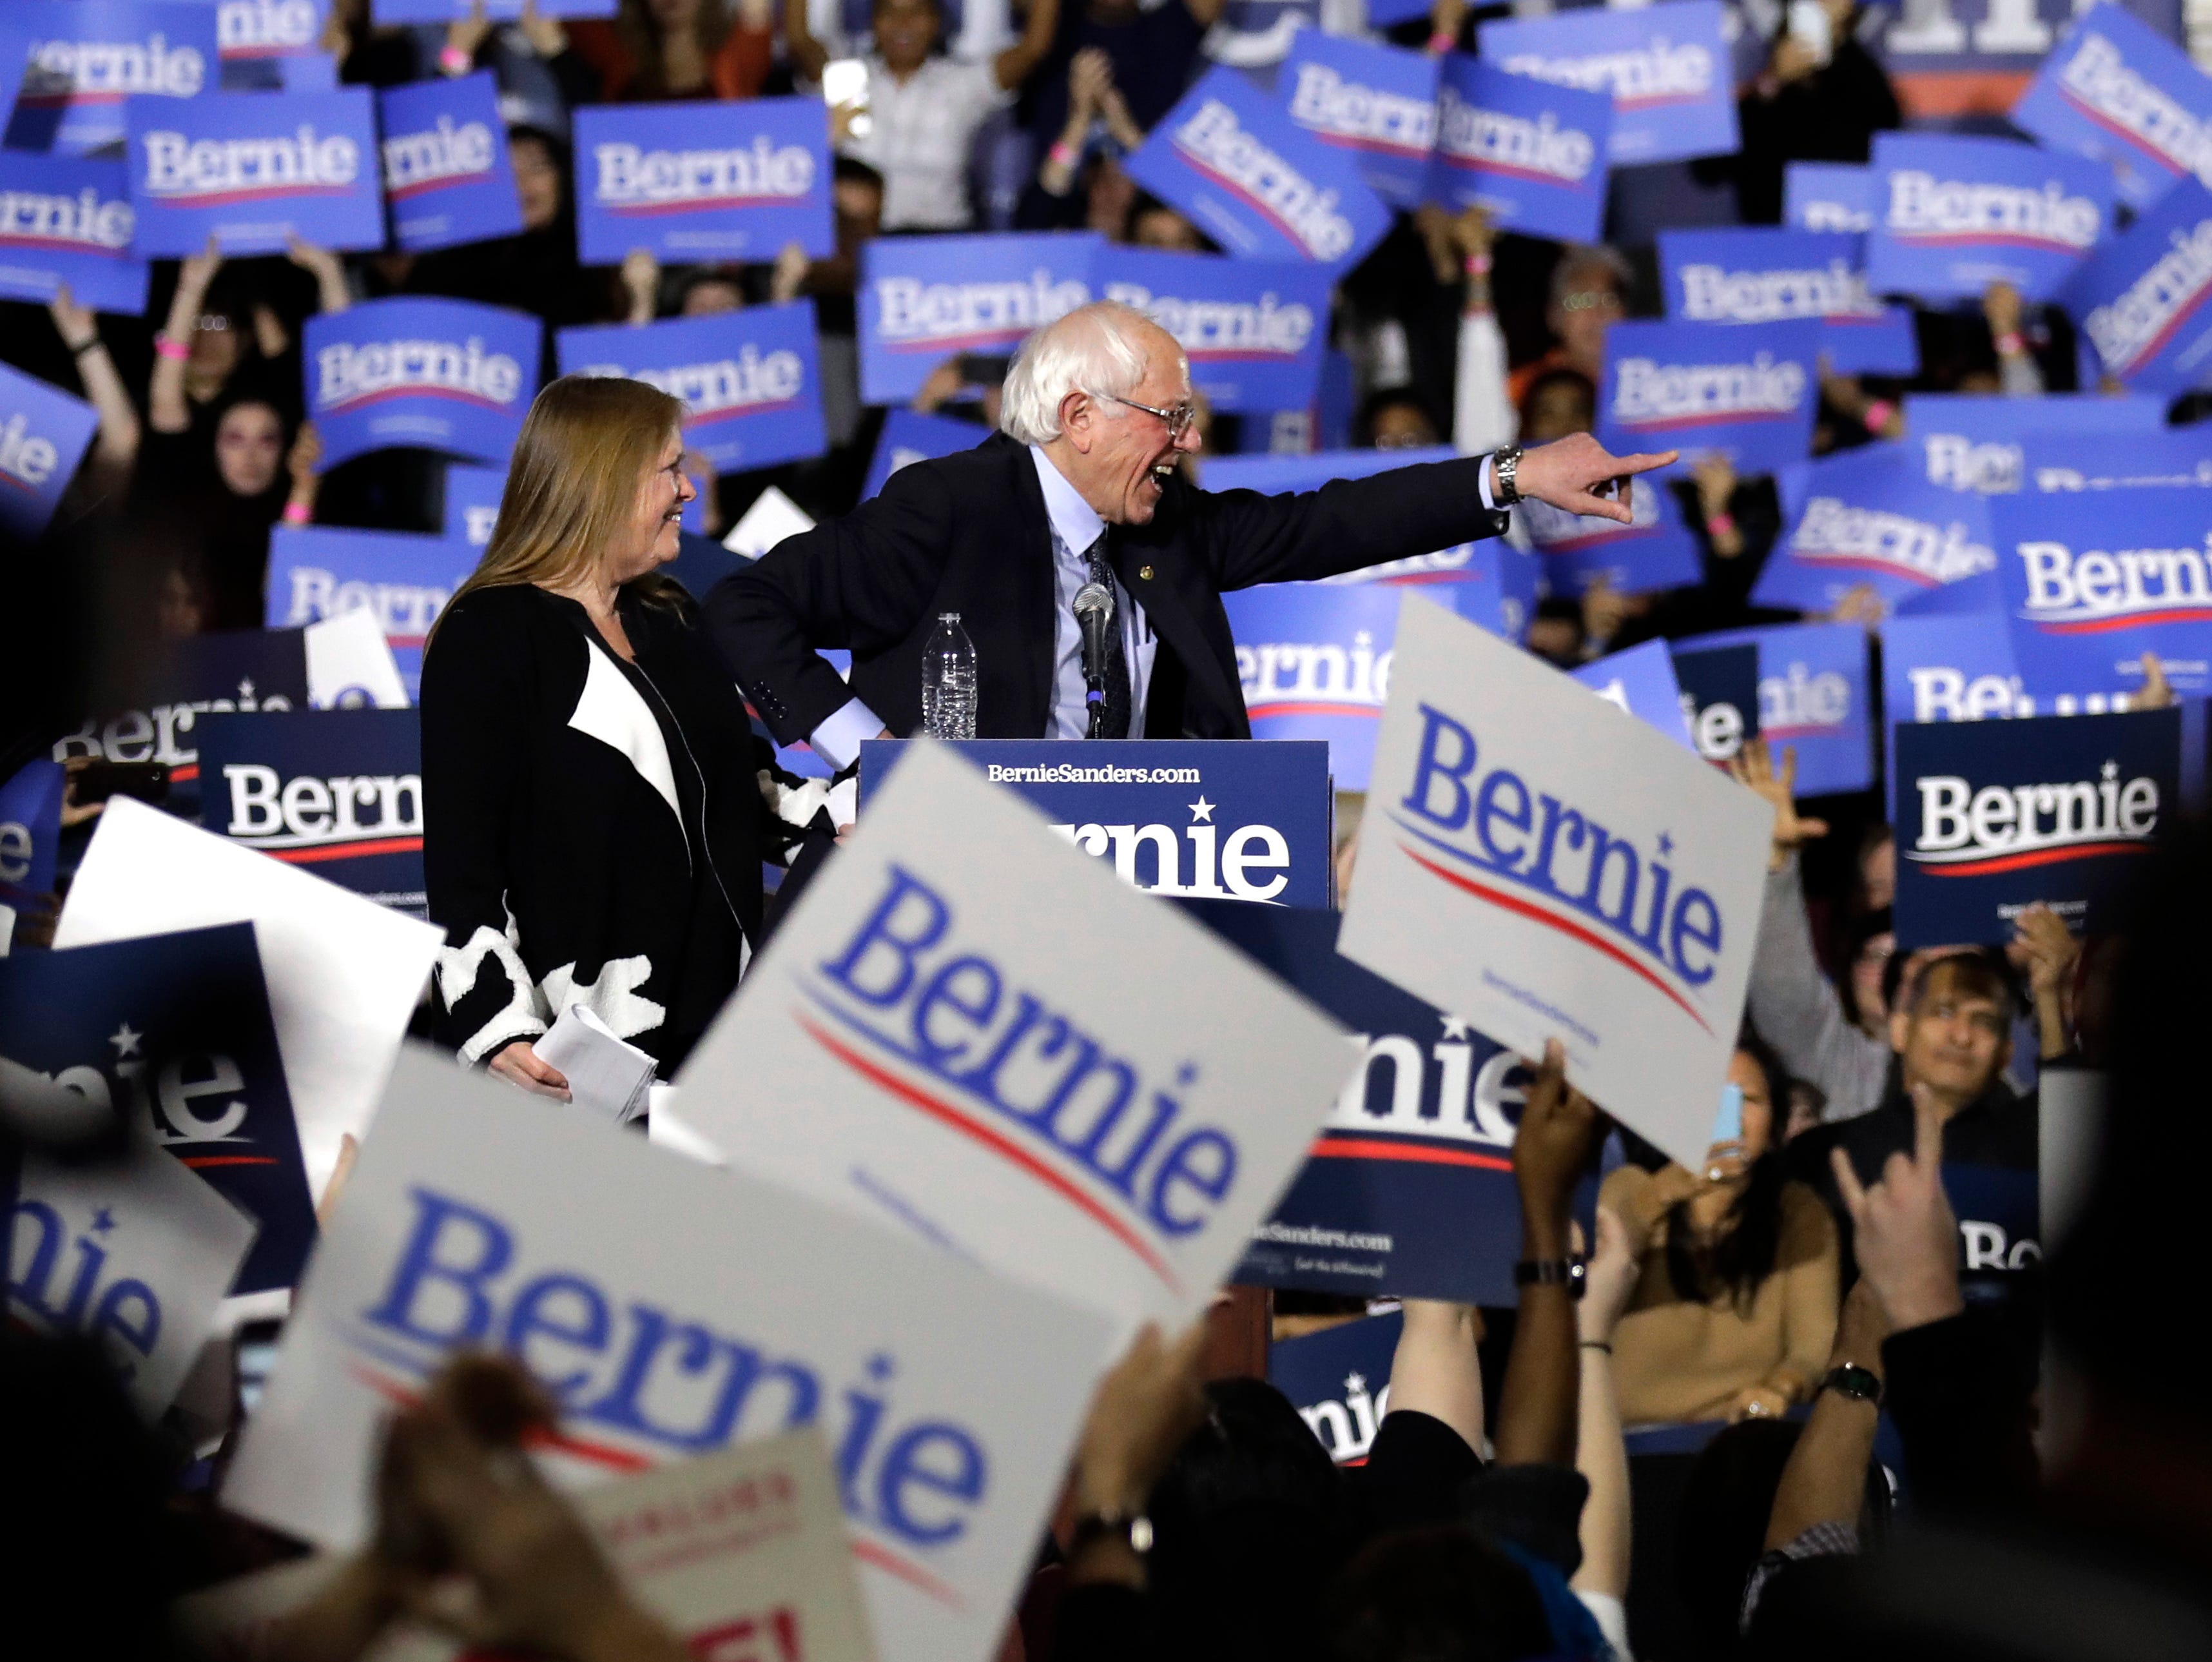 Sen. Bernie Sanders, I-Vt., right, and his wife Jane O'Meara Sanders, greet as they leave after he held his 2020 presidential campaign at Navy Pier in Chicago, Sunday, March 3, 2019. Over the next several weeks, Sanders will travel to Iowa, New Hampshire, South Carolina, Nevada, and California. He will then return to Burlington, Vt., for the official launch of his campaign.